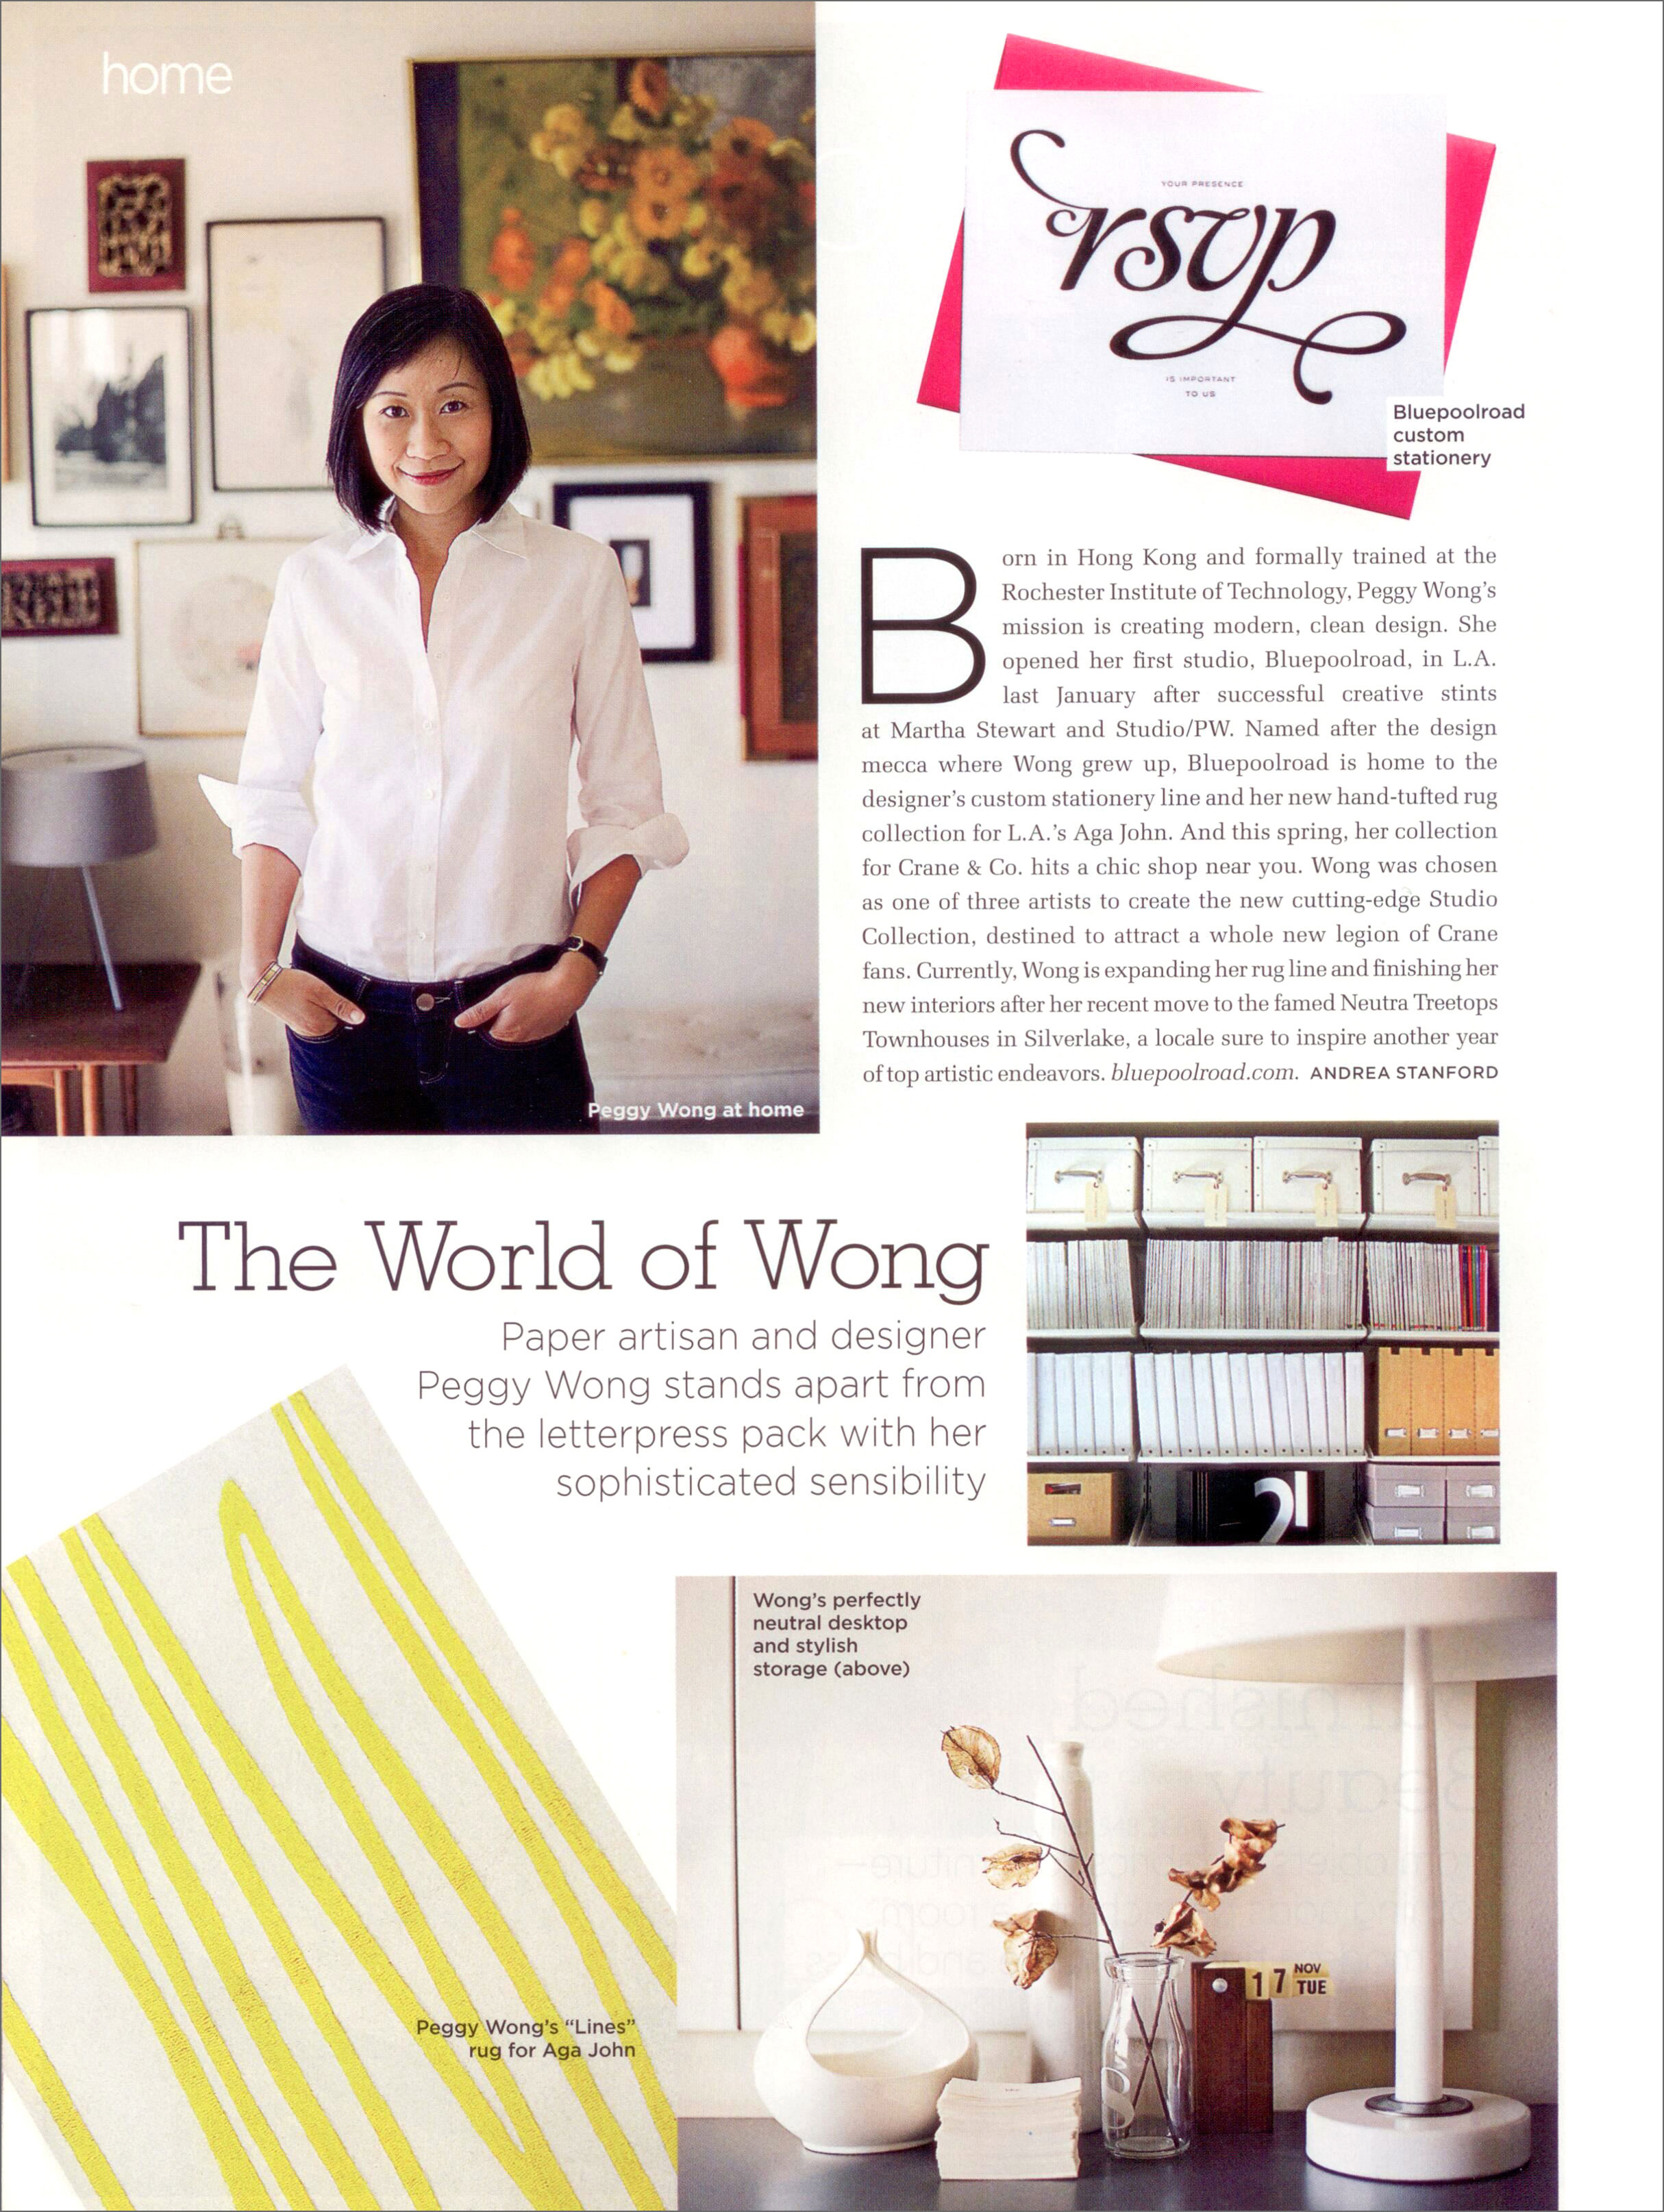 peggy-wong_press_c-magazine_mar2010_the-world-of-wong.jpg